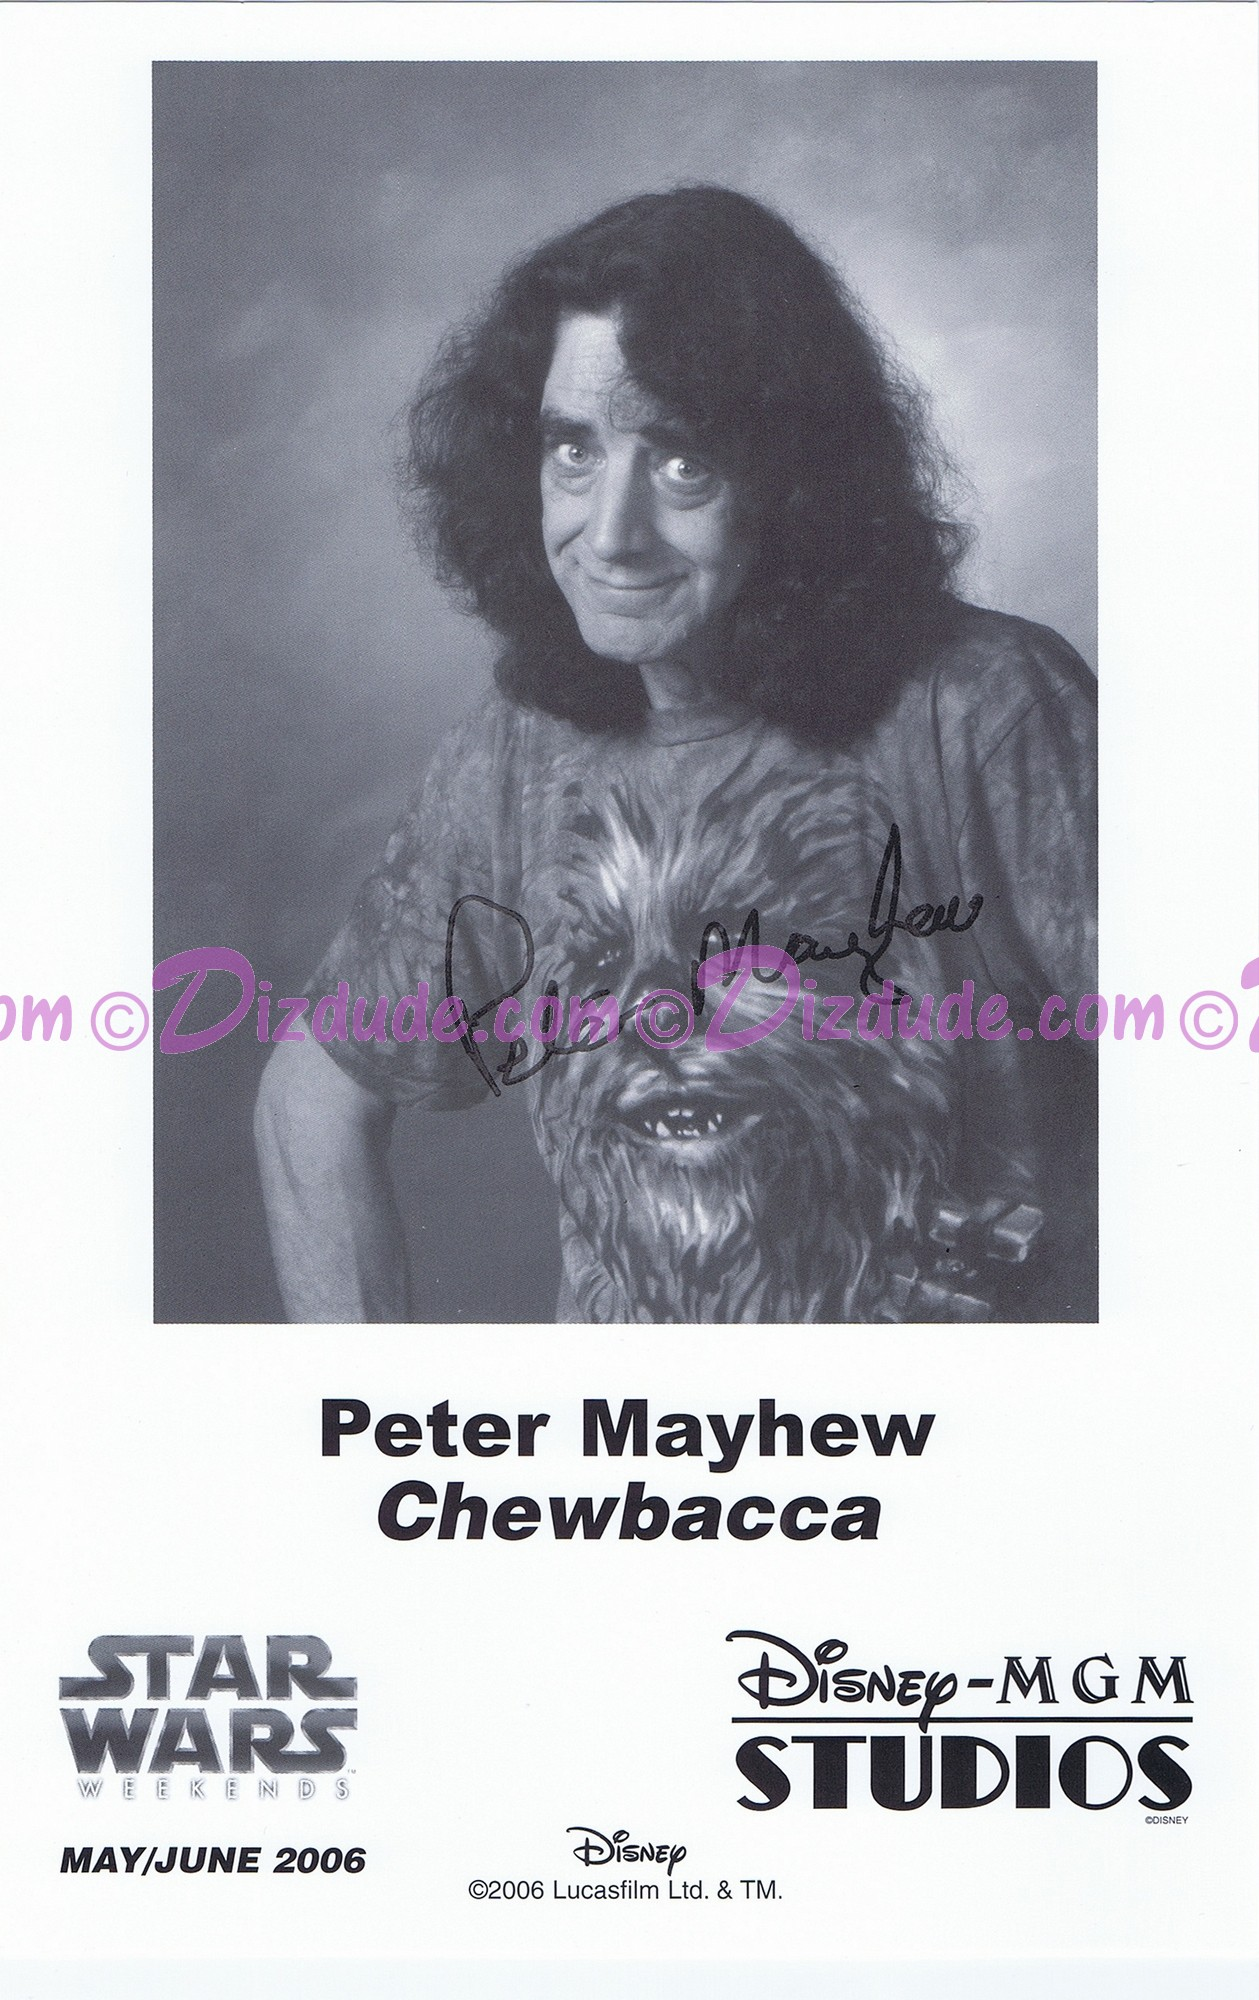 Peter Mayhew who played Chewbacca Presigned Official Star Wars Weekends 2006 Celebrity Collector Photo